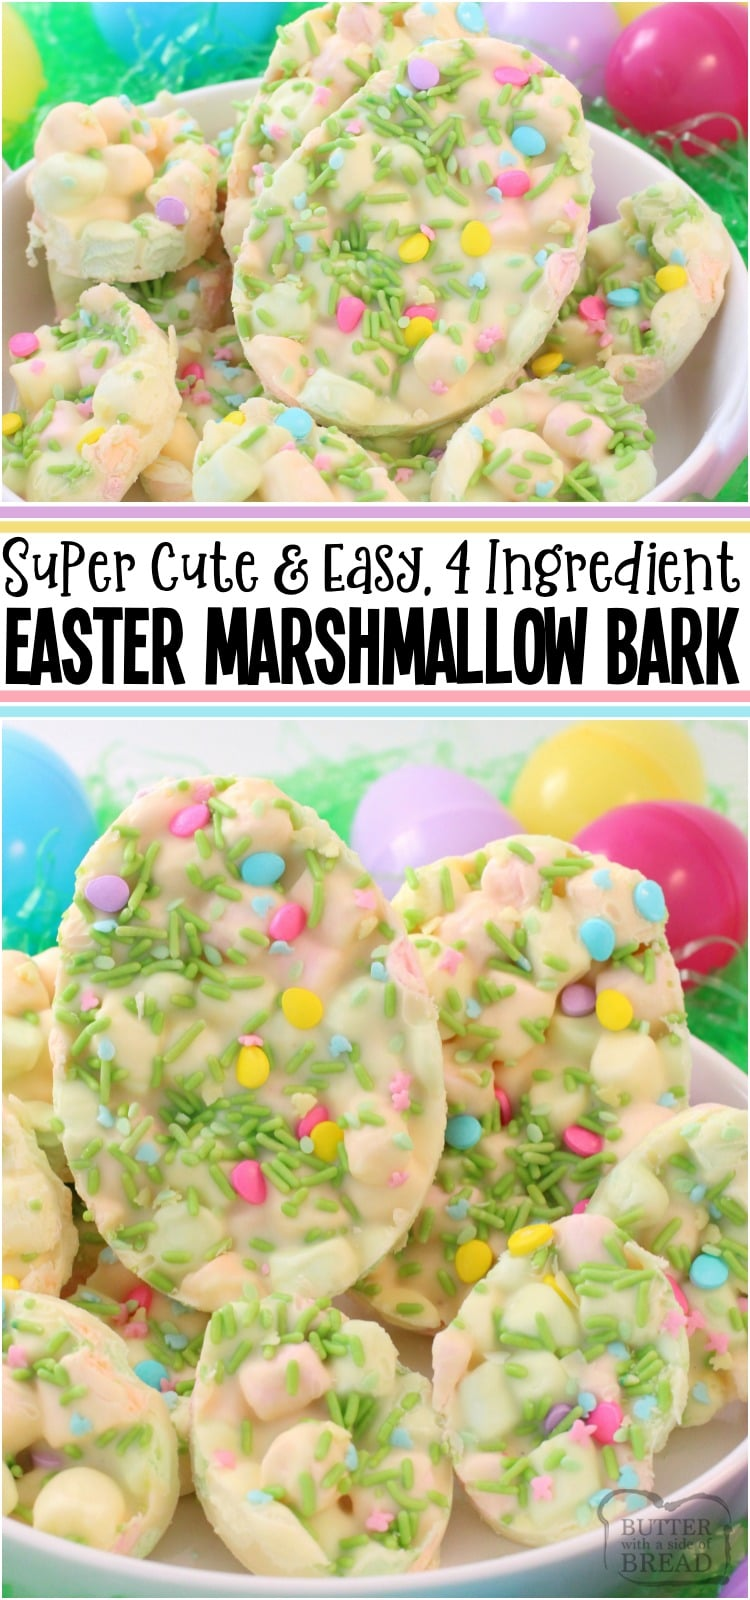 Easter Marshmallow Bark is one of my favorite Easter desserts! Just 4 ingredients and a few minutes to make this cute and festive Easter treat. Everyone enjoys our Easter Marshmallow Bark! #Easter #Dessert #whitechocolate #marshmallows #pastel #candy #recipe from BUTTER WITH A SIDE OF BREAD